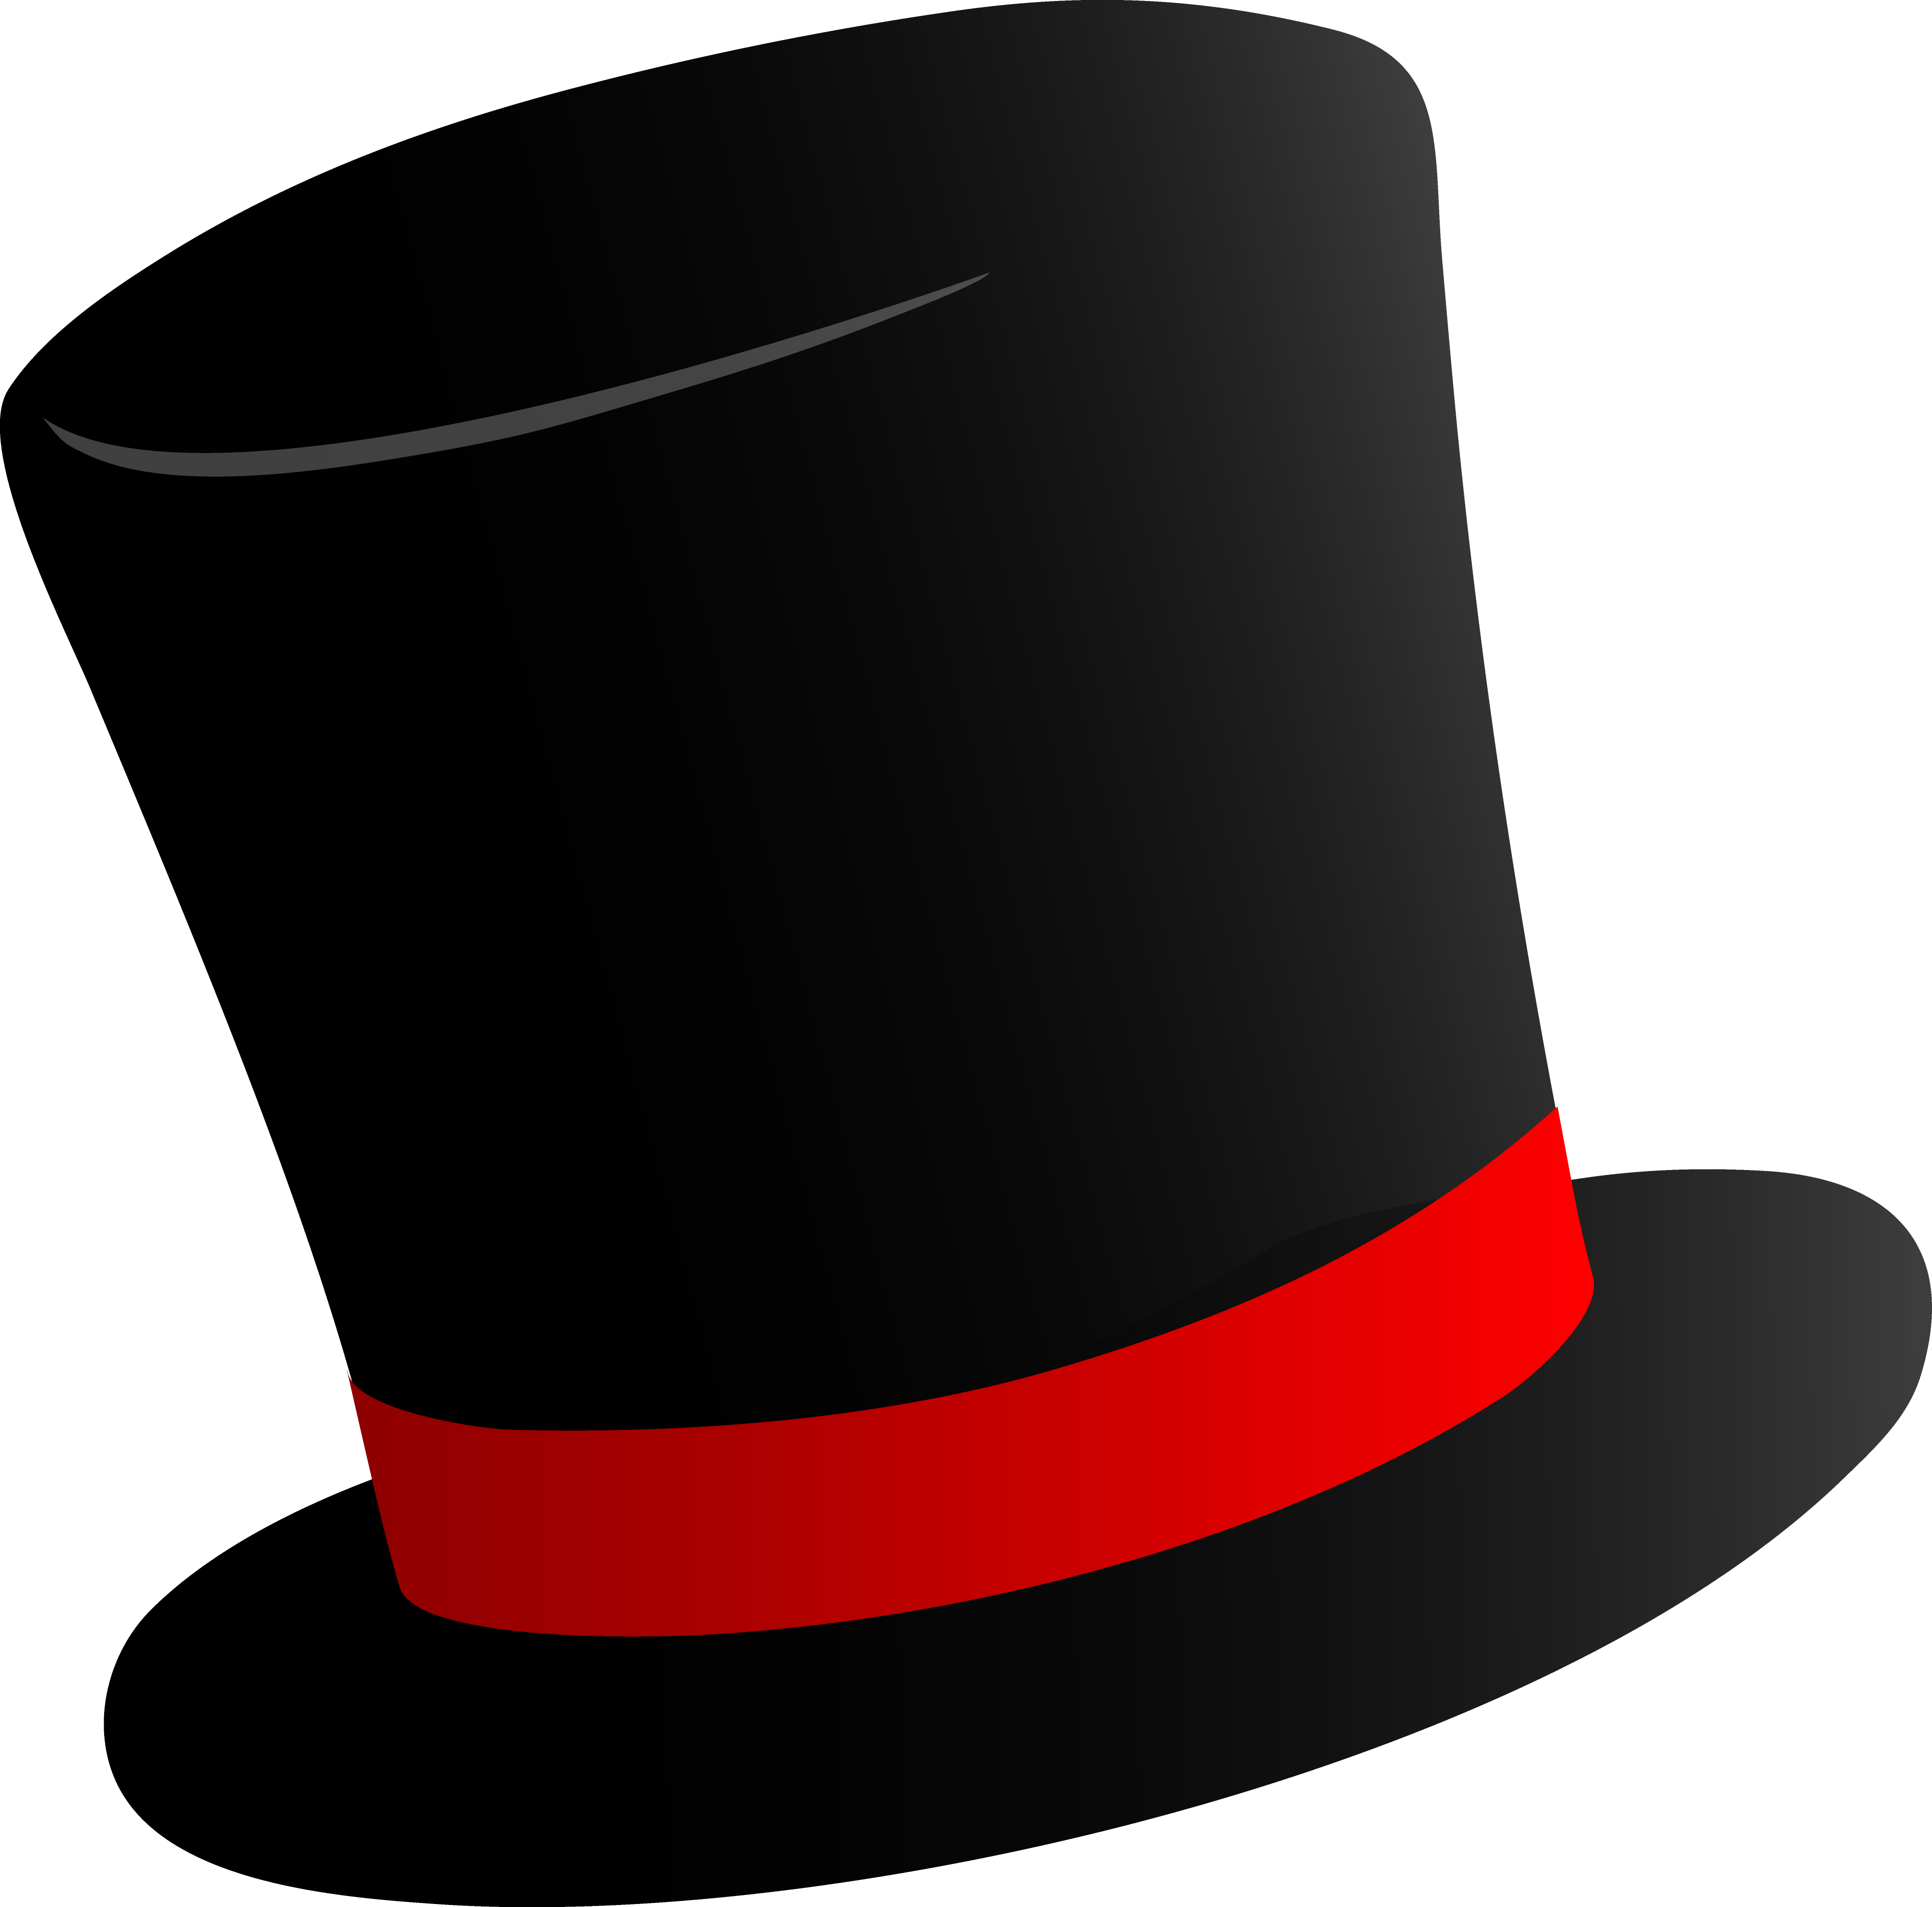 Top Hat Clipart   Clipart Panda   Free Clipart Images